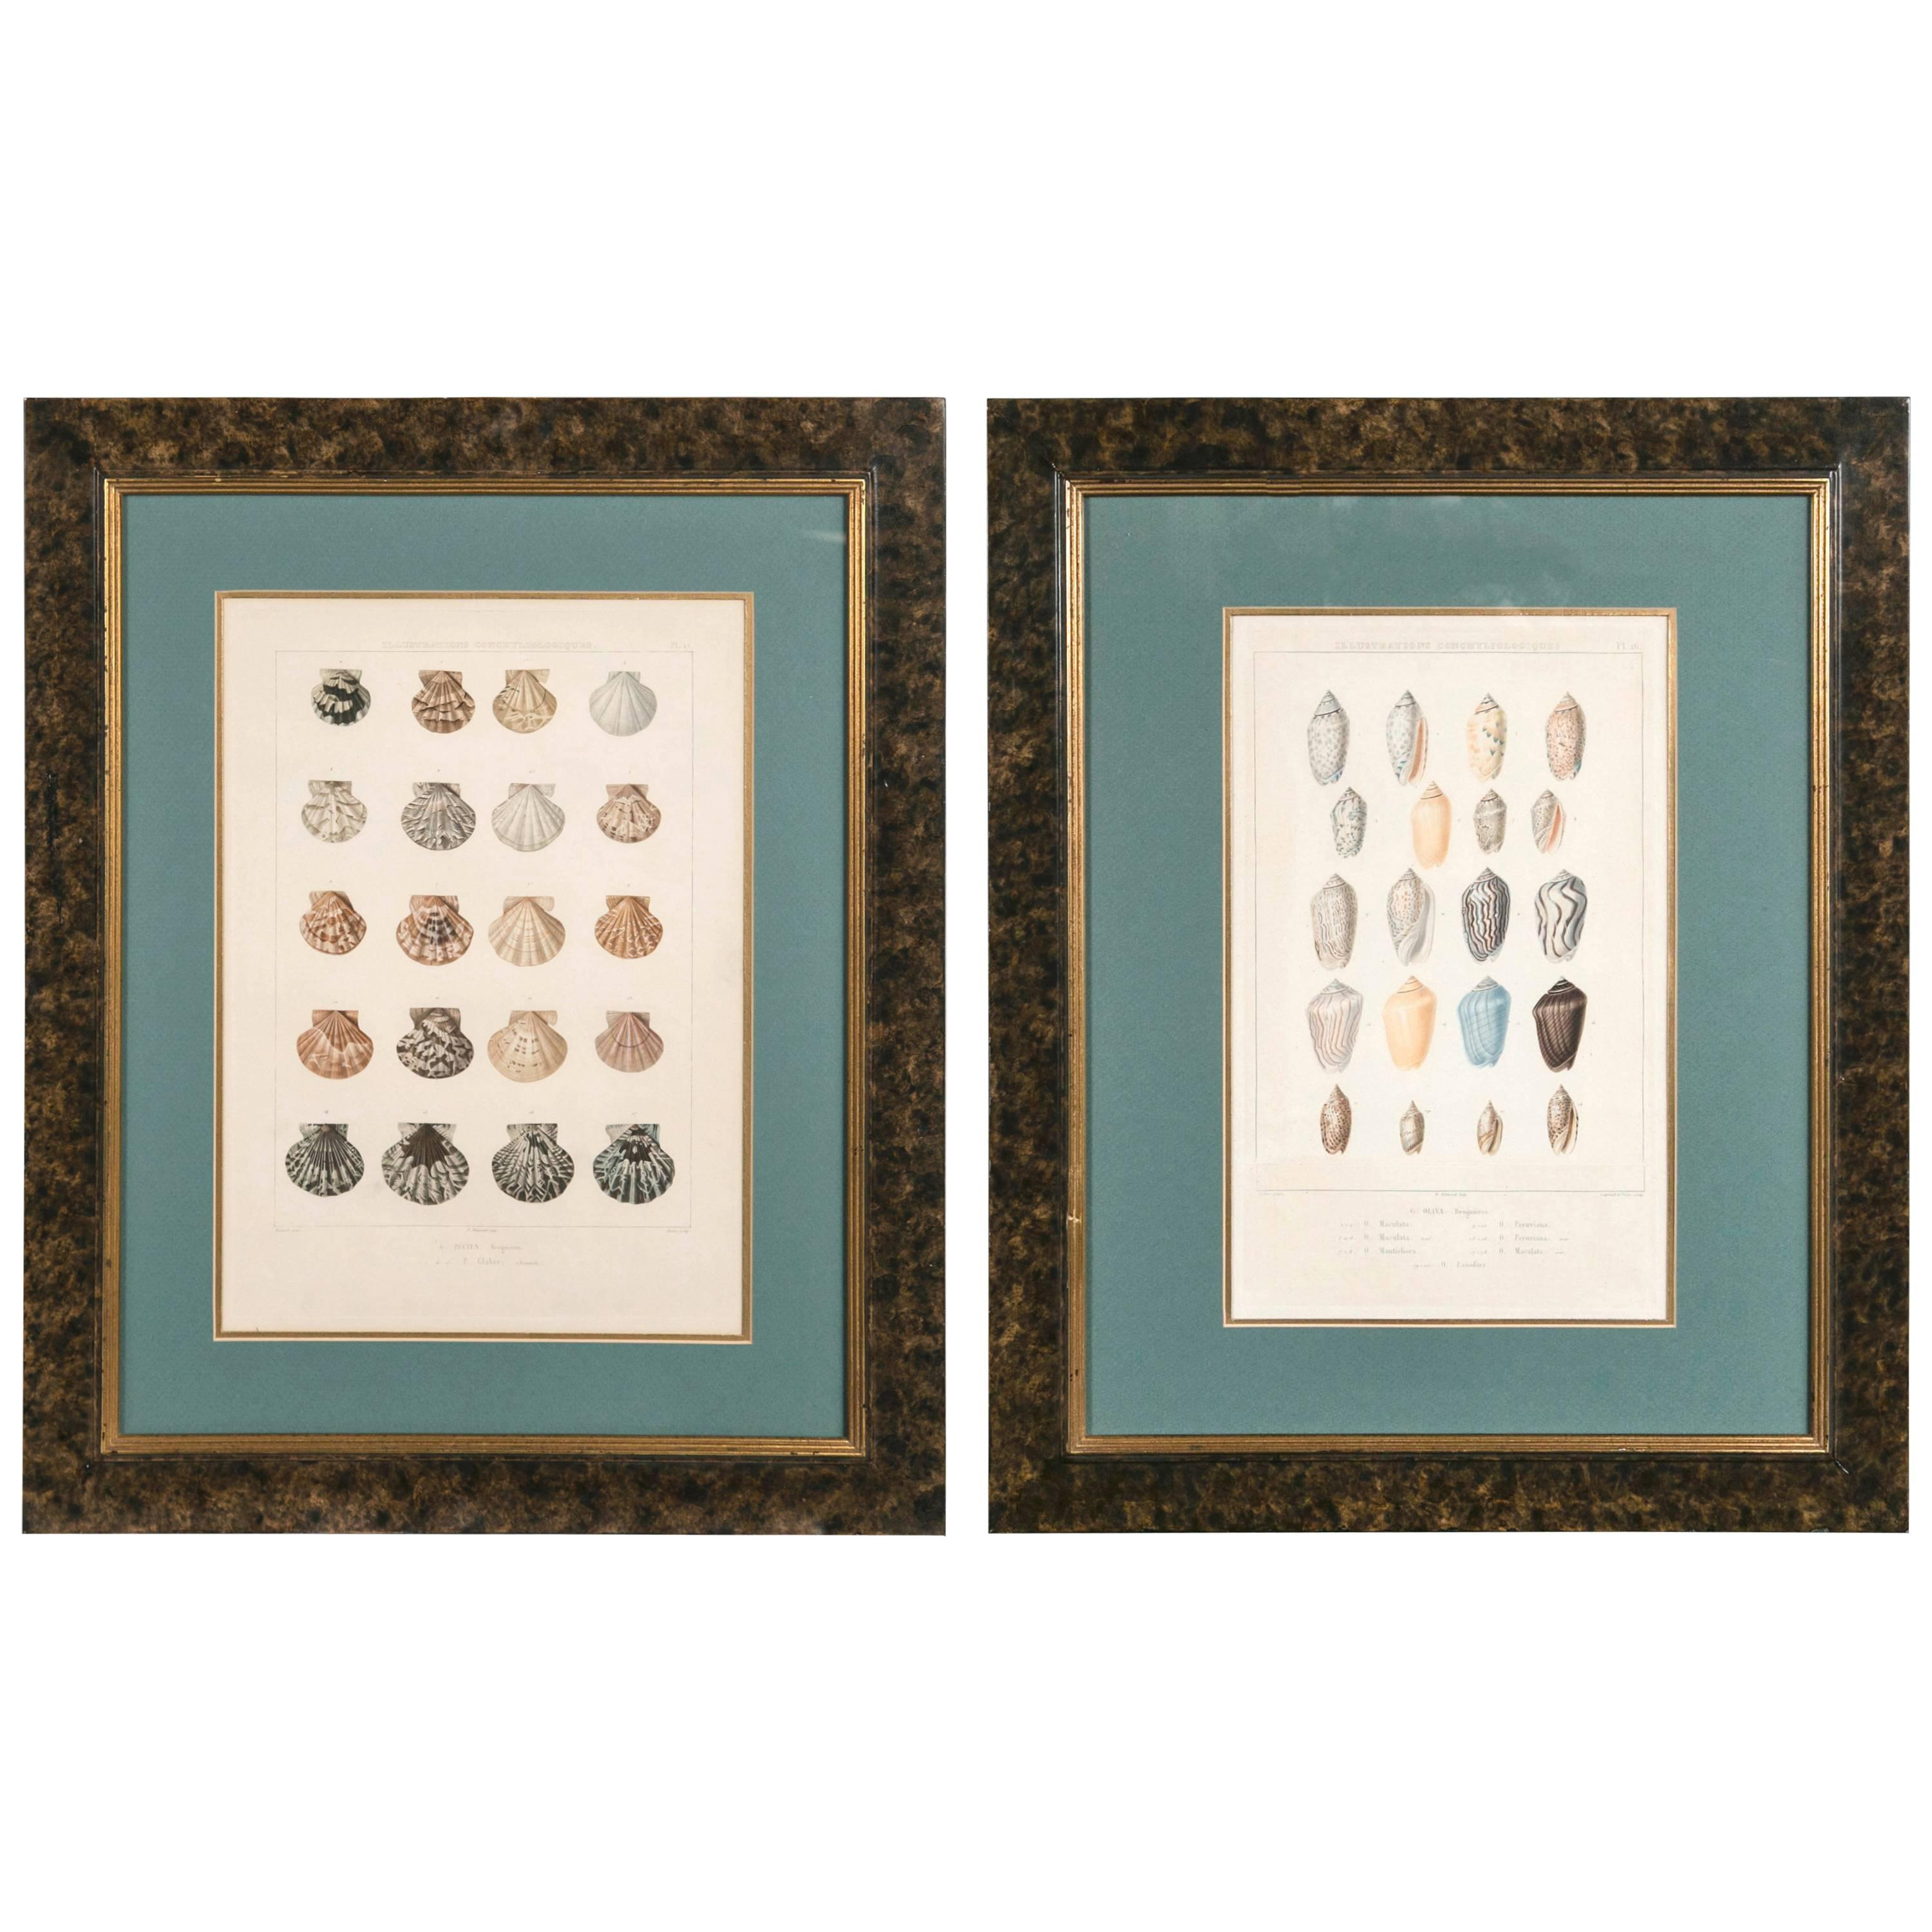 Pair Framed Hand-Colored Engravings of Sea Shells, France, circa 1850